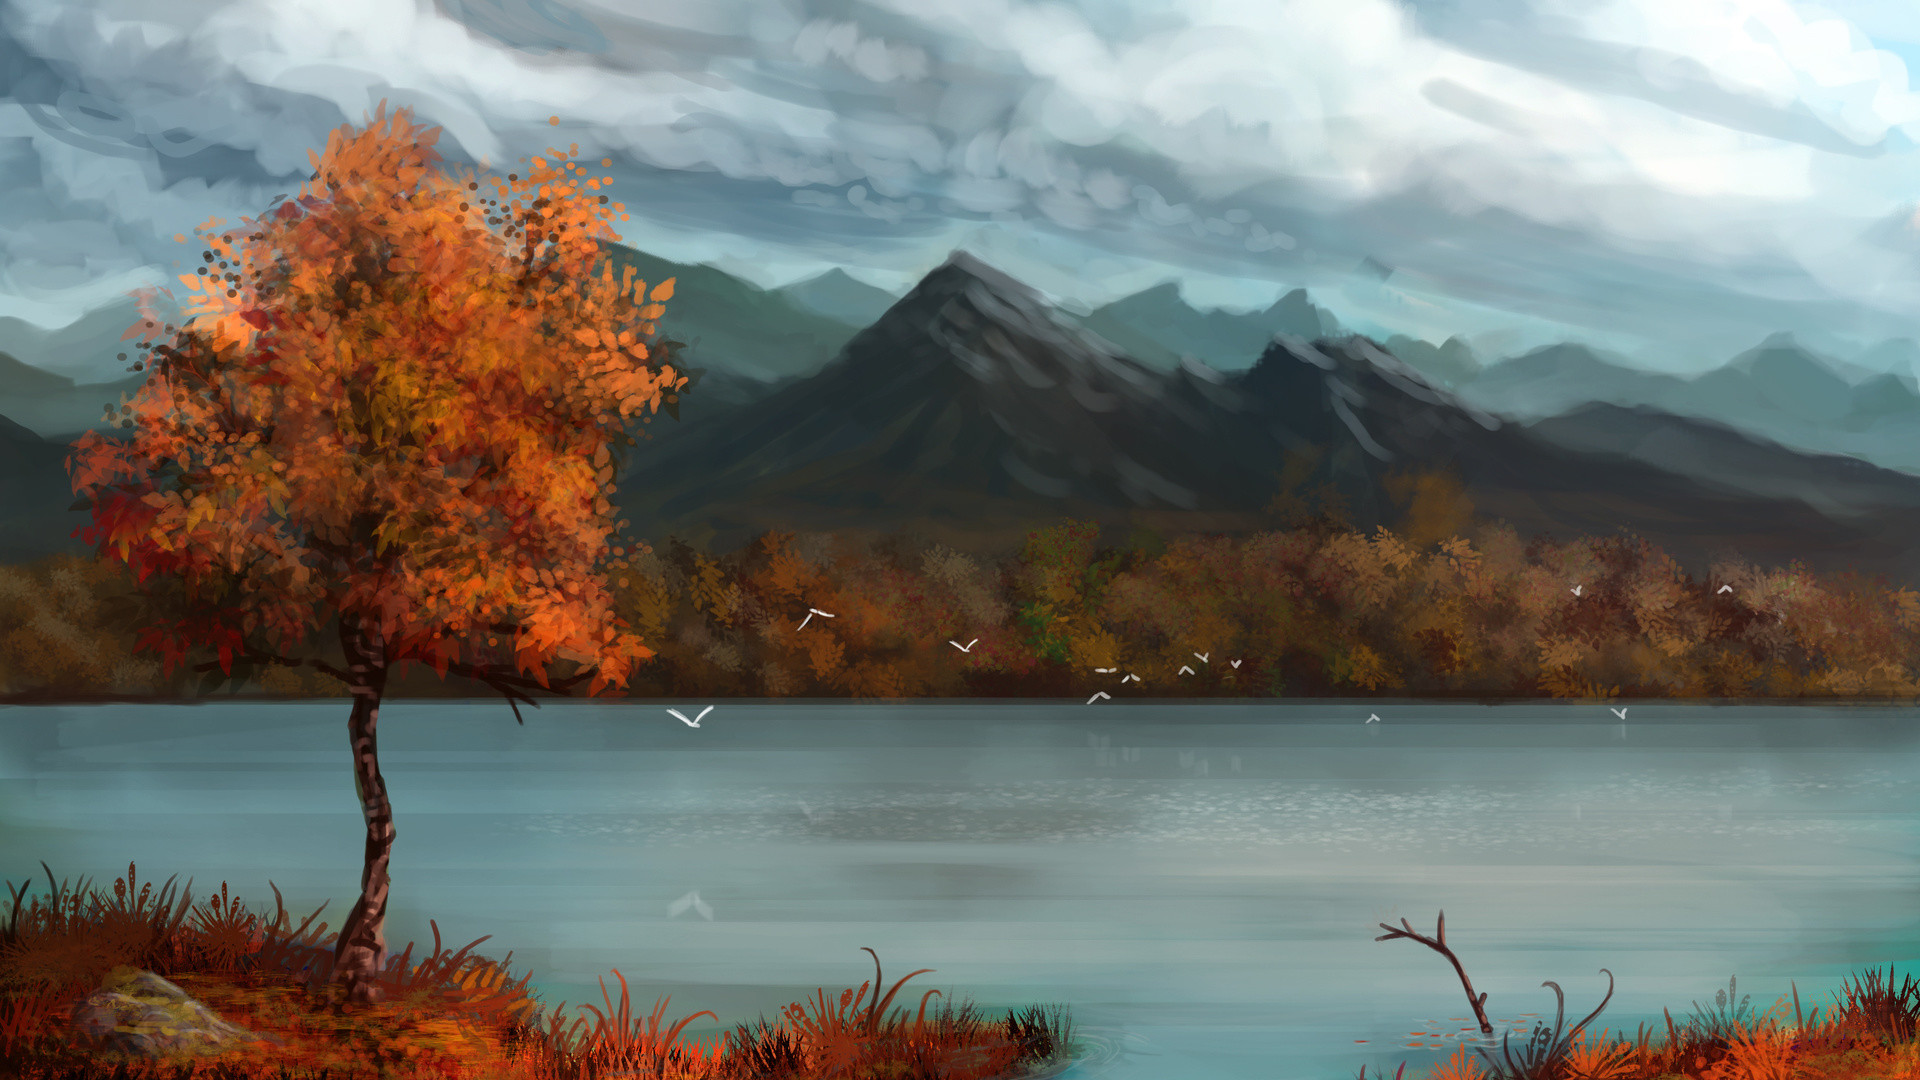 Autumn Forest Rivers Lakes Backgrounds | paintings art landscapes lakes  mountains sky clouds tree forest autumn